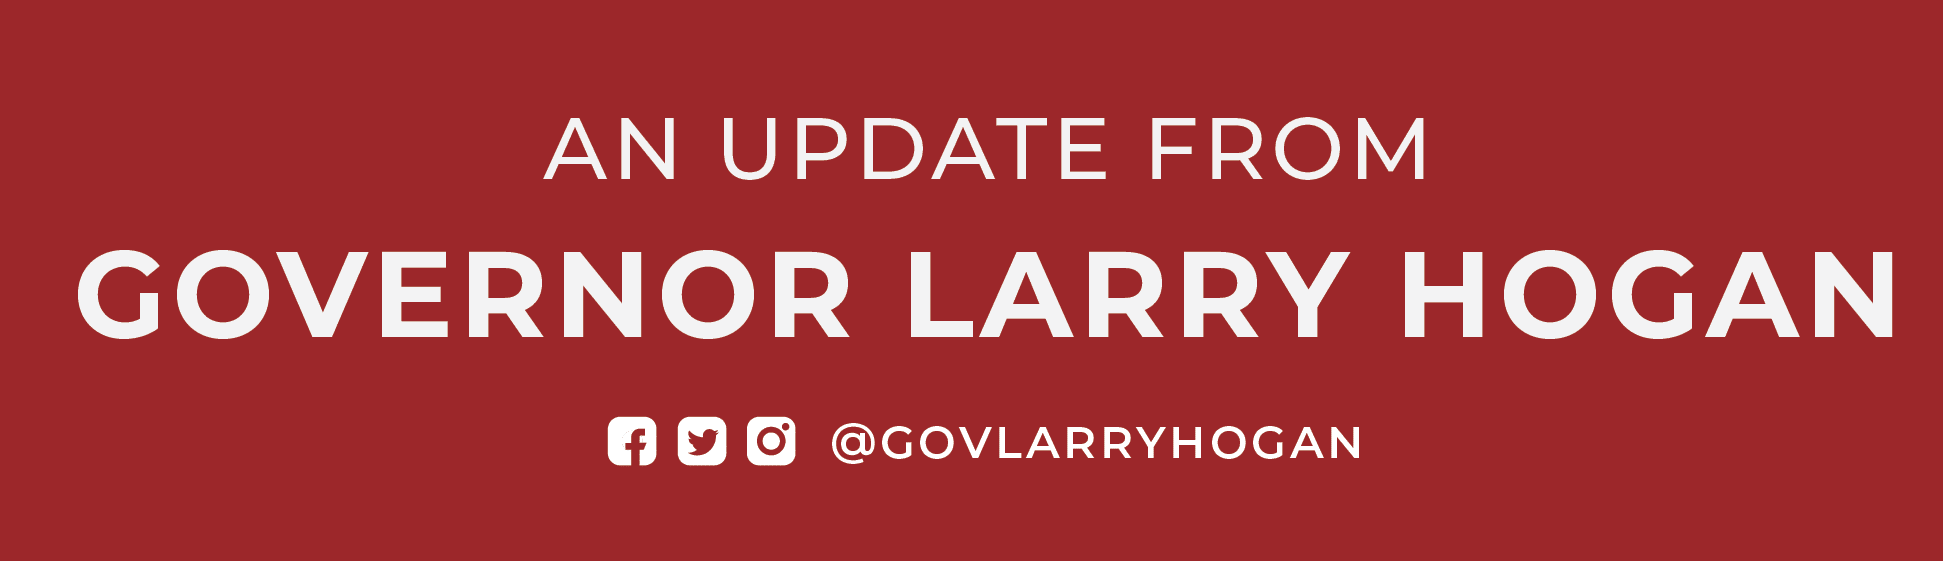 An Update from Governor Larry Hogan